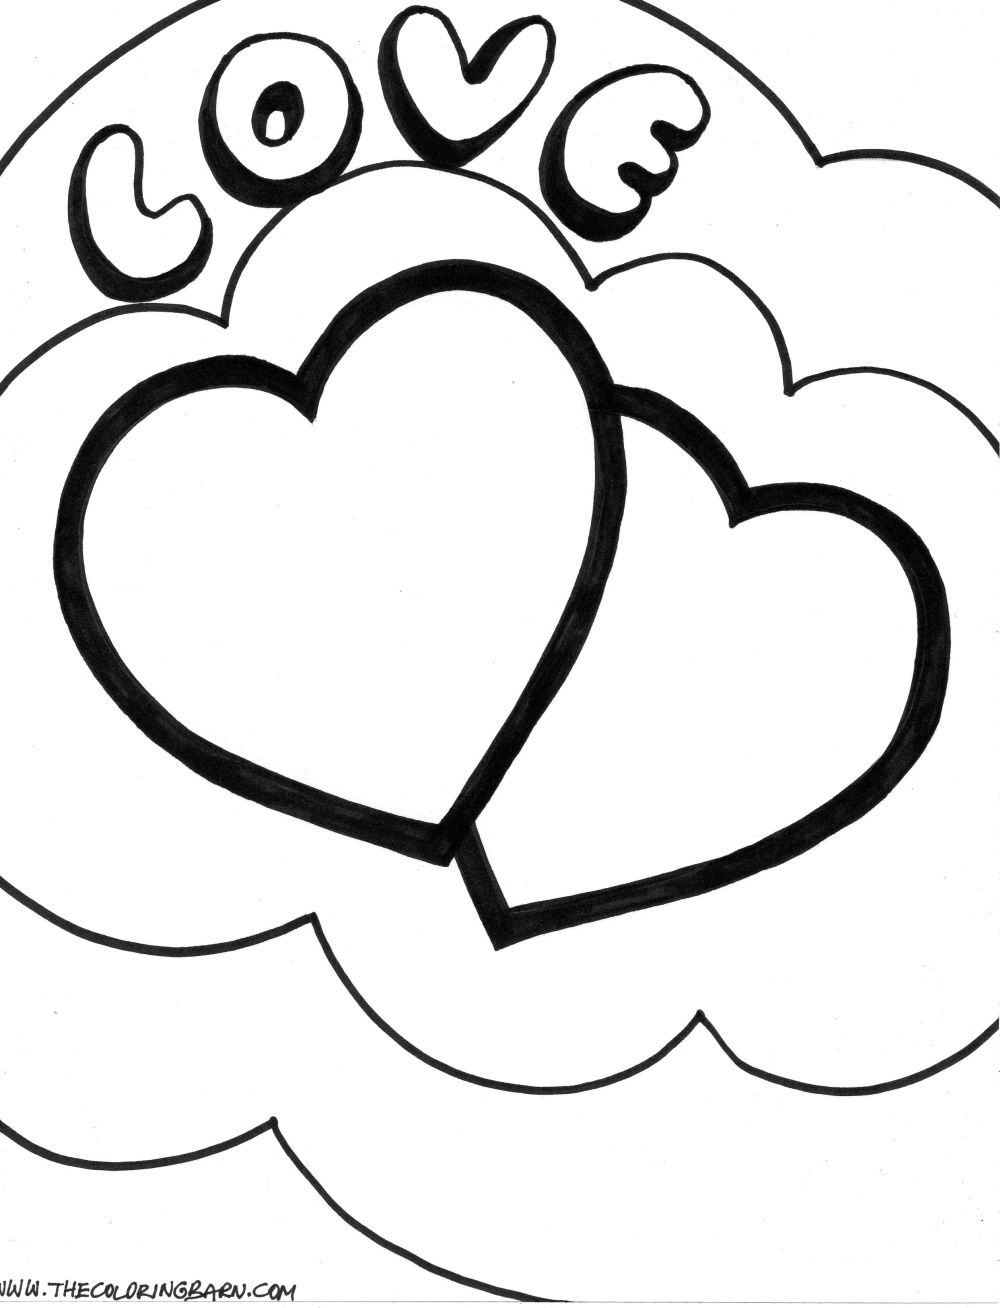 double heart coloring pages - photo#3